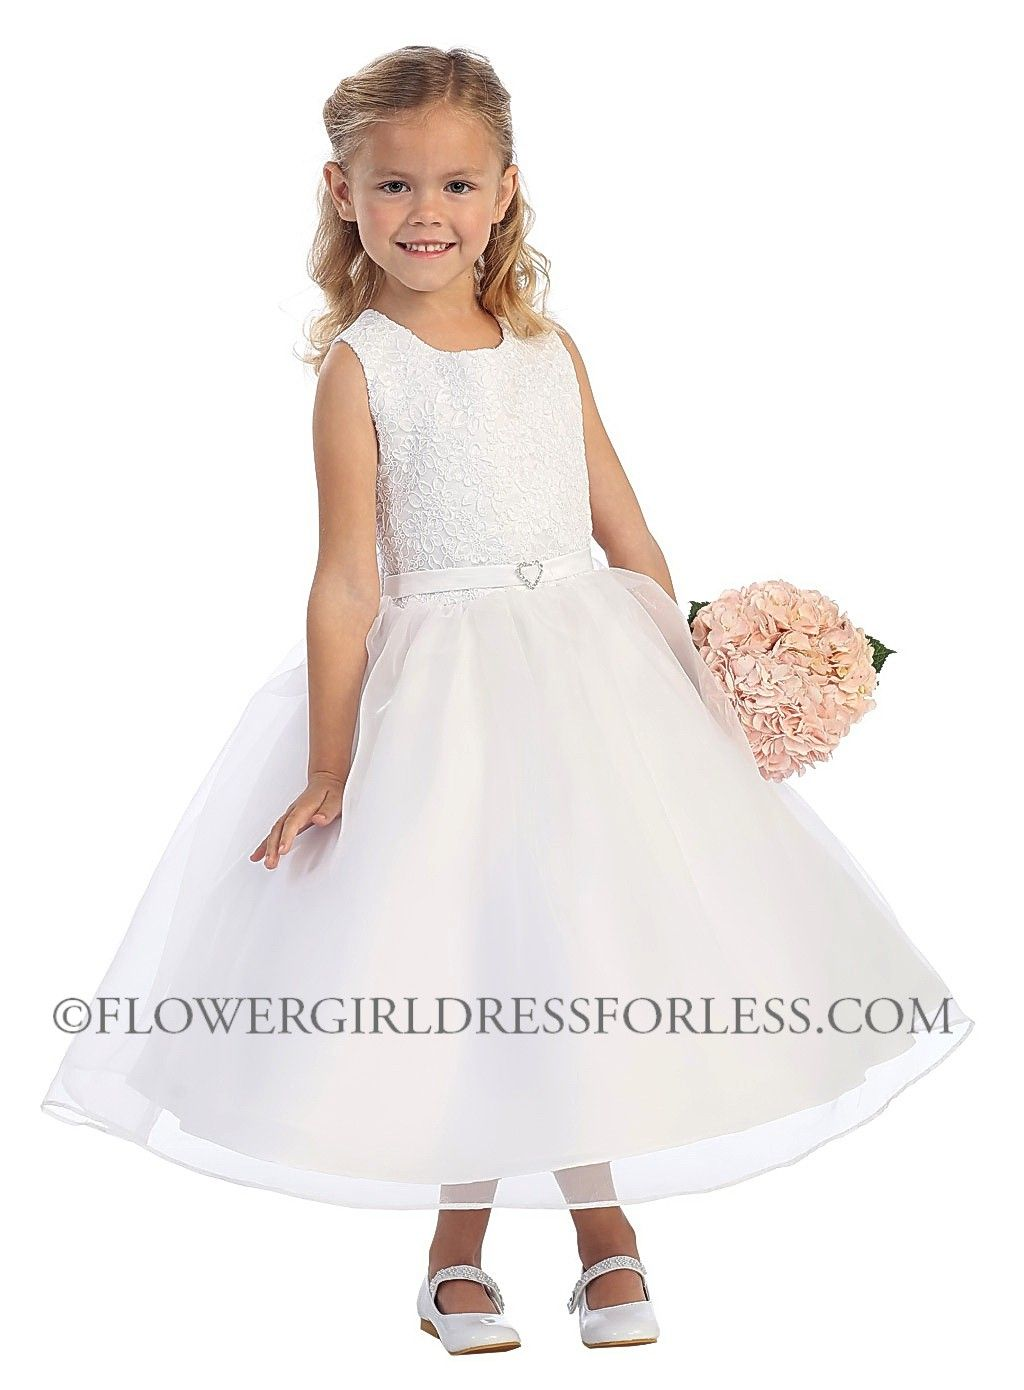 91887ed6a4ff TT_5571 - Girls Dress Style 5571- Choice of White or Ivory Sleeveless Organza  Dress with Lace Bodice - Embroidered Dresses - Flower Girl Dress For Less